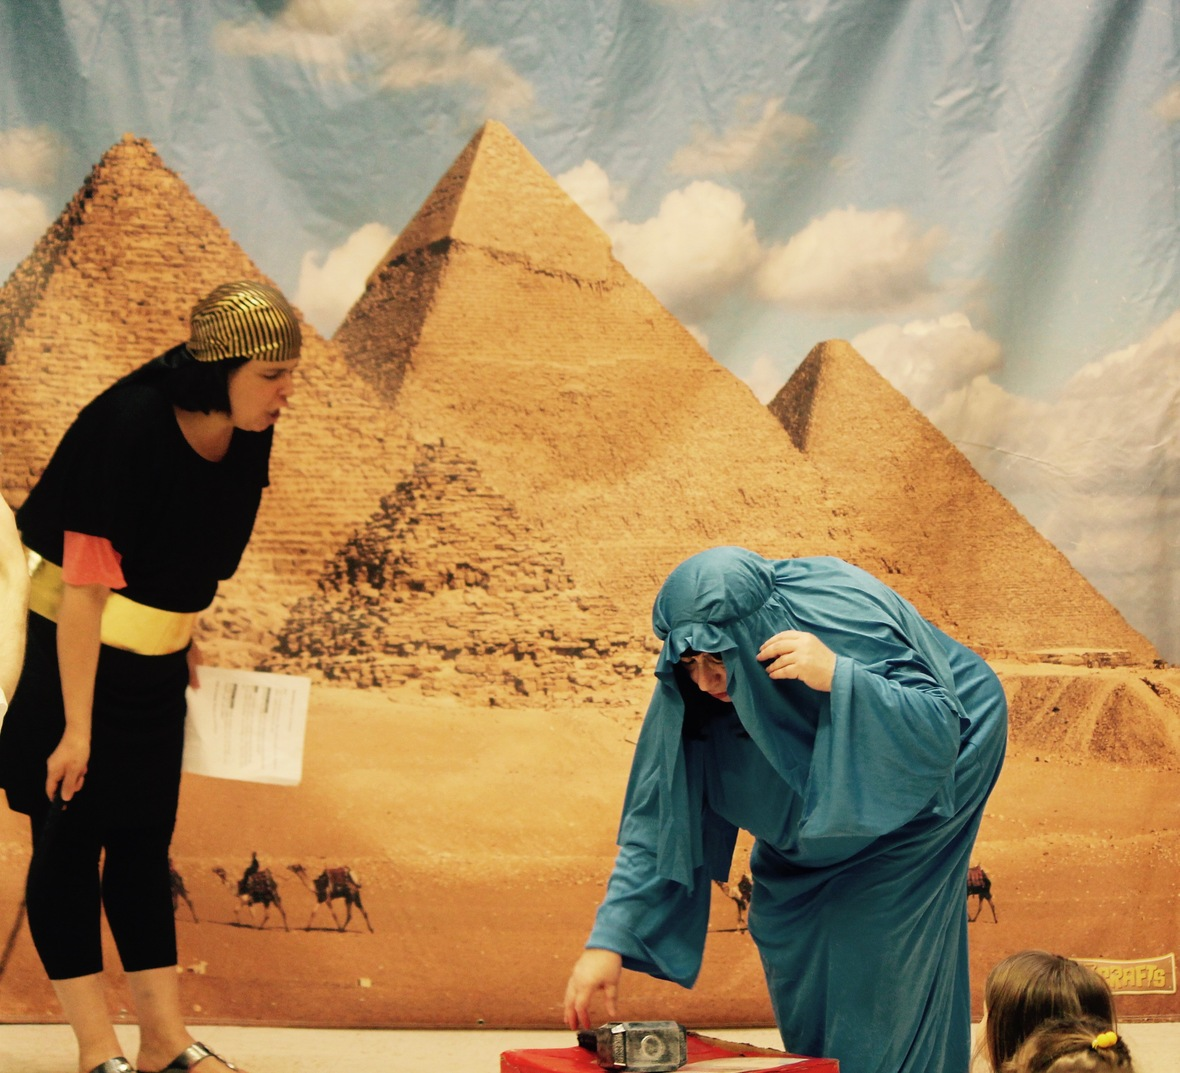 During the Back-to-the Exodus intro, Moses, Pharaoh and other biblical characters come to life as ancient Egypt is smitten with the ten plagues. -